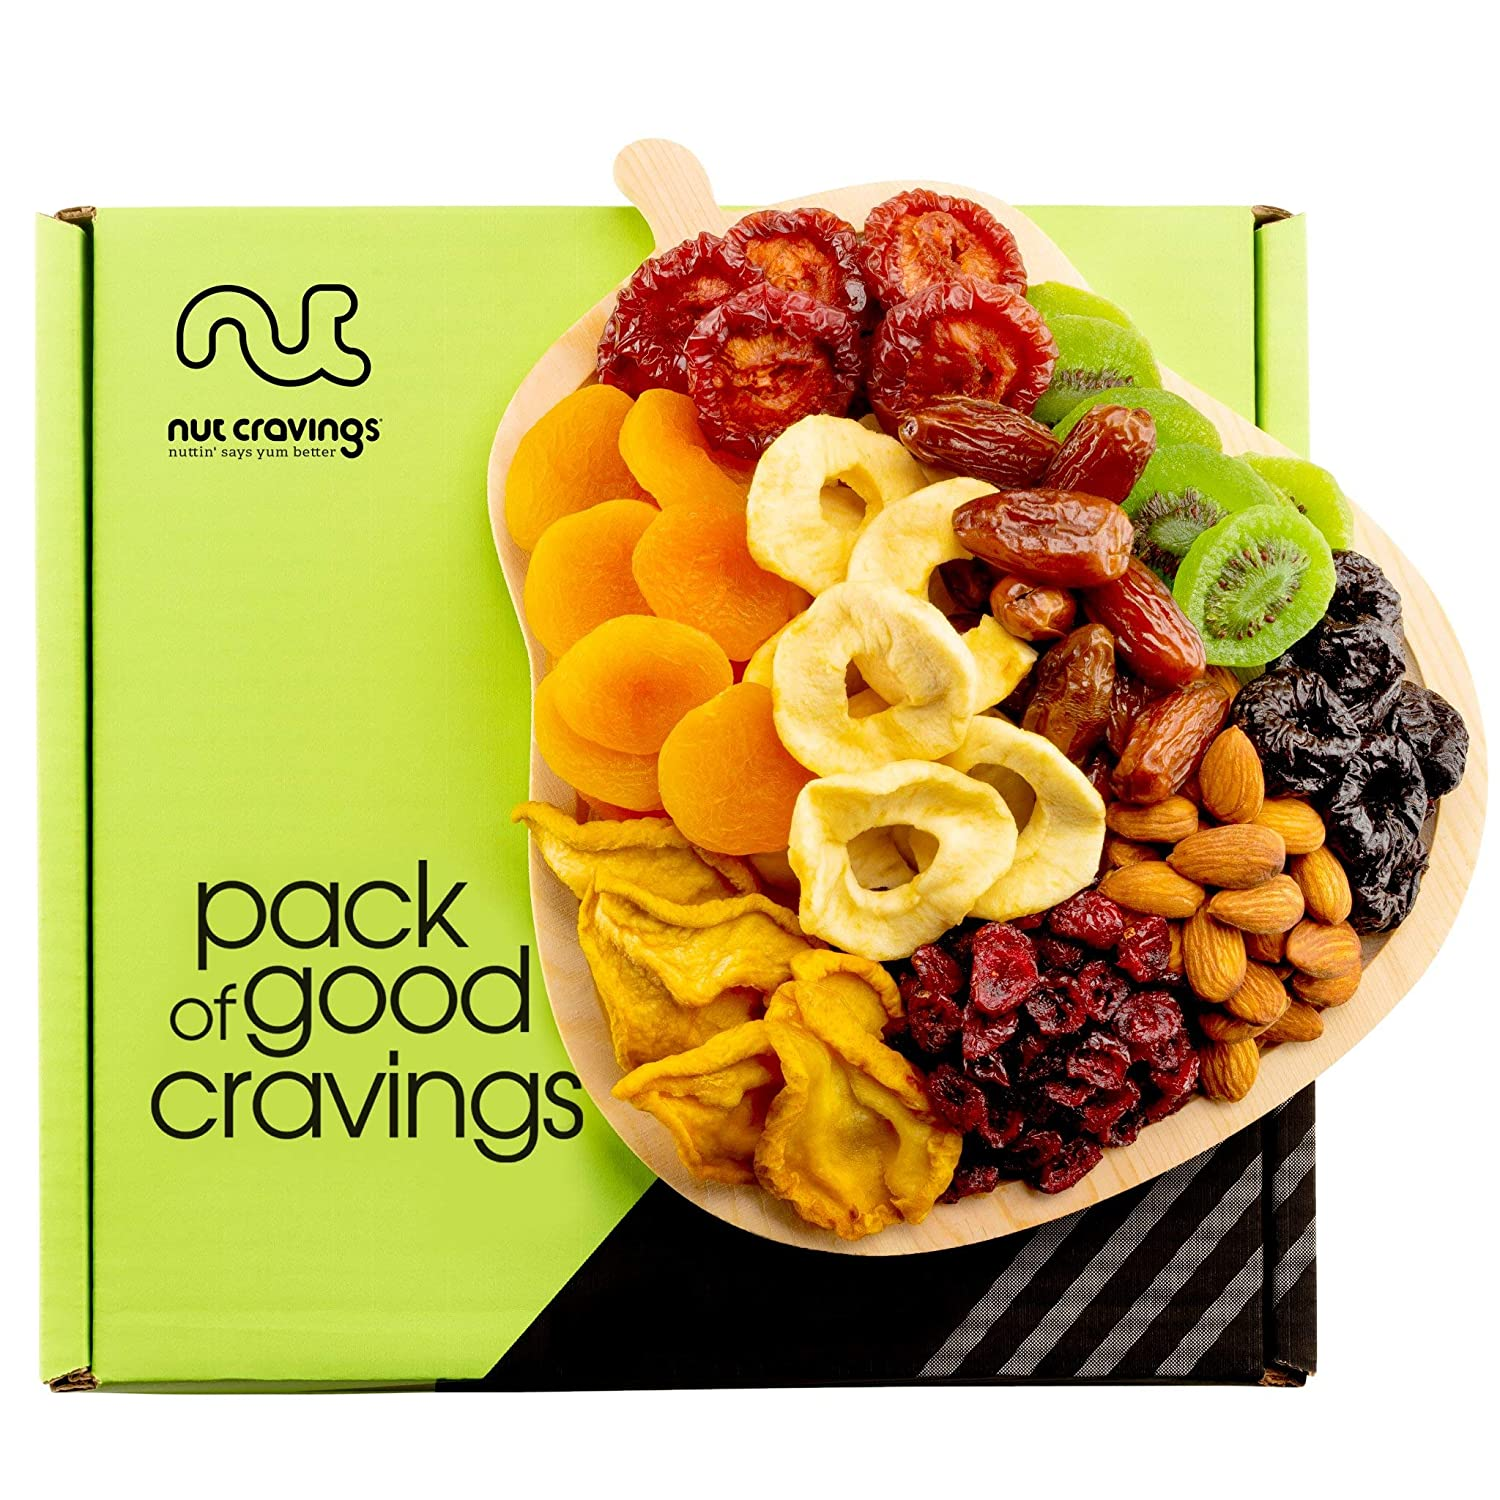 Dried Fruit & Nut Gift Basket, Pear Shaped Wood Tray (9 Mix) - Easter Food Arrangement Platter, Care Package Variety, Prime Birthday Assortment, Healthy Kosher Snack Box for Women, Men, Adults